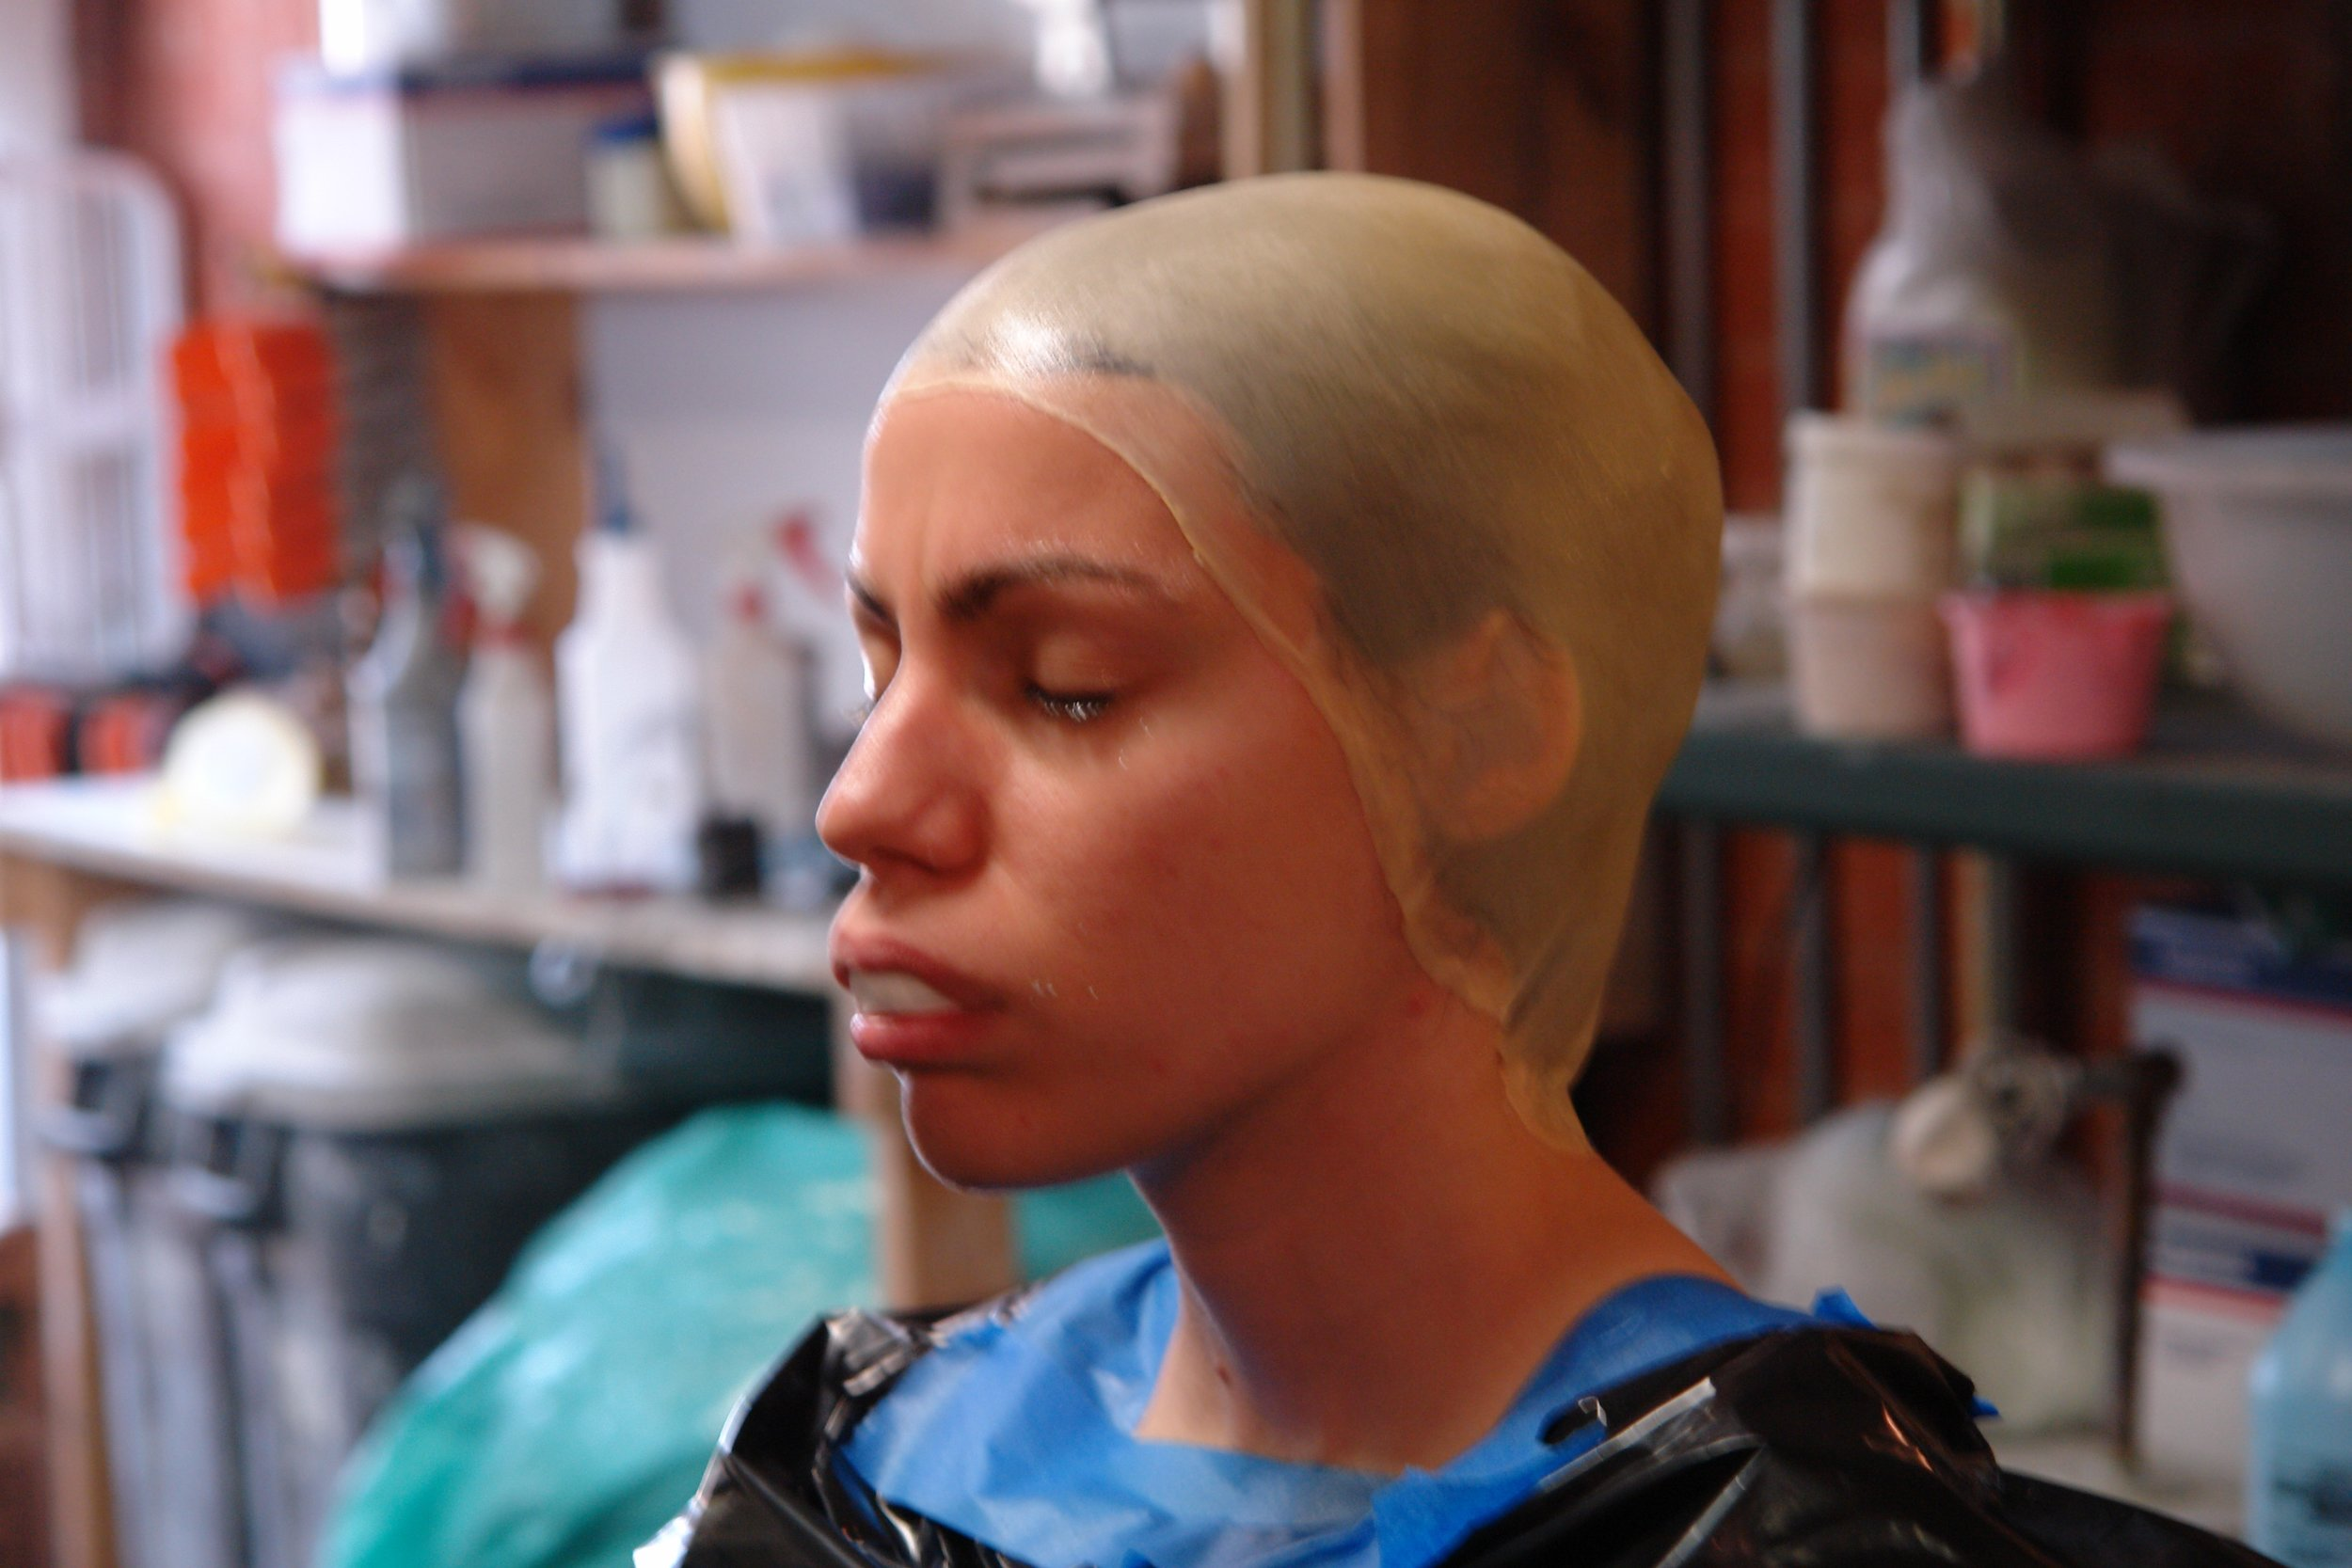 Actor Margarita Maliagros ready to be life cast at Barney Burman's B2FX shop as part of her special character make-up as Pinhead M in Lascaux Entertainment's 2011 production of  The Elephant Man , directed by John Drouillard.  Photo by Natalie Drouillard.